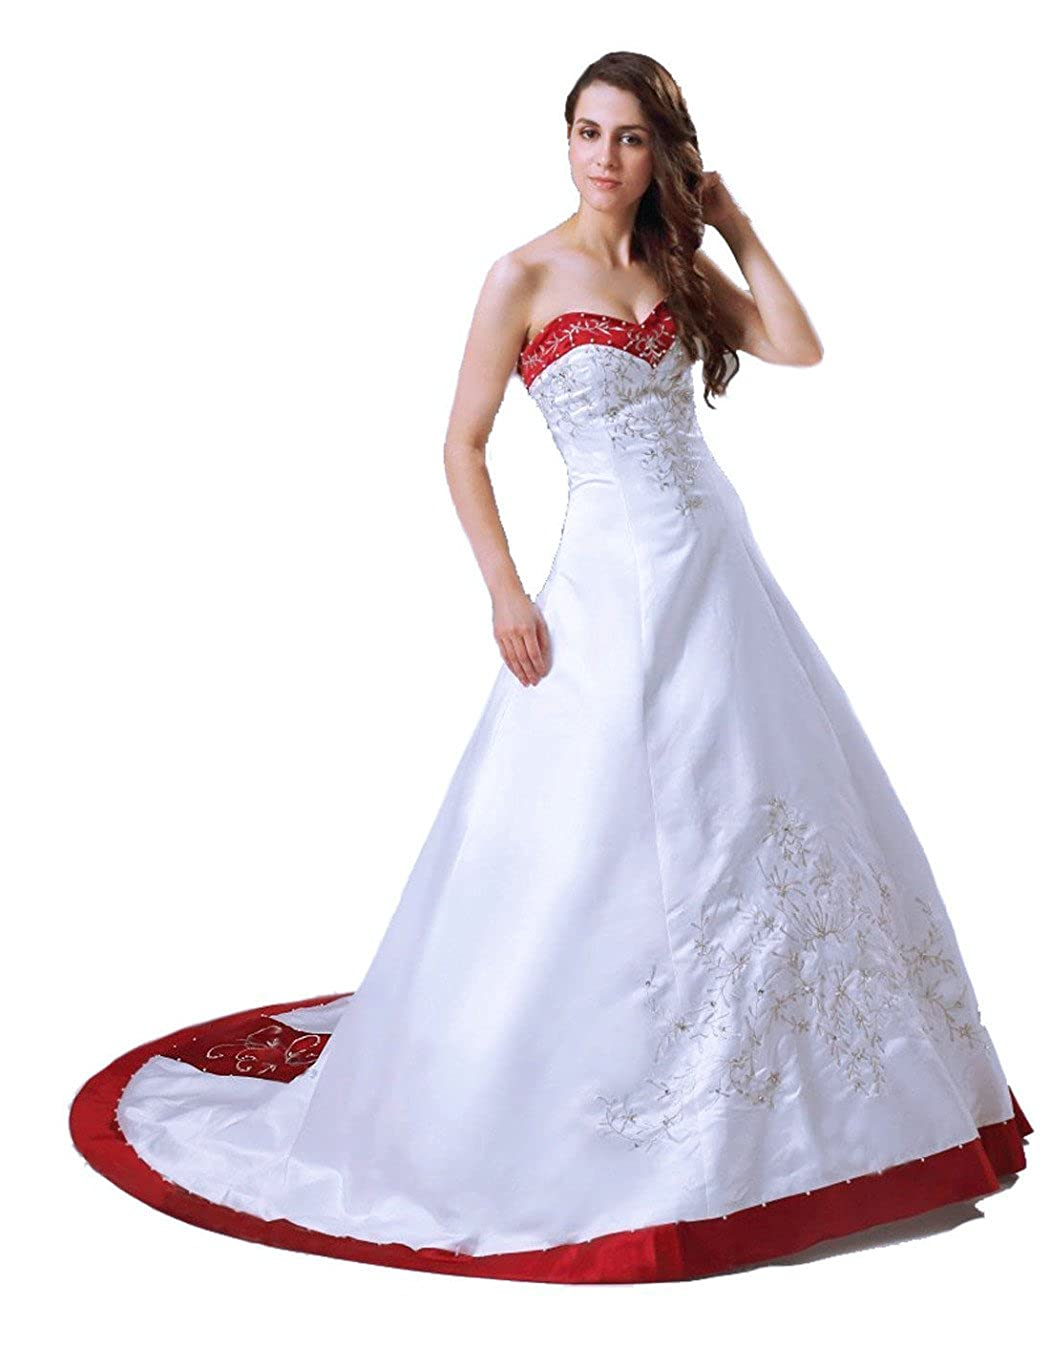 RohmBridal Womens Strapless Satin A-line Bridal Wedding Dress